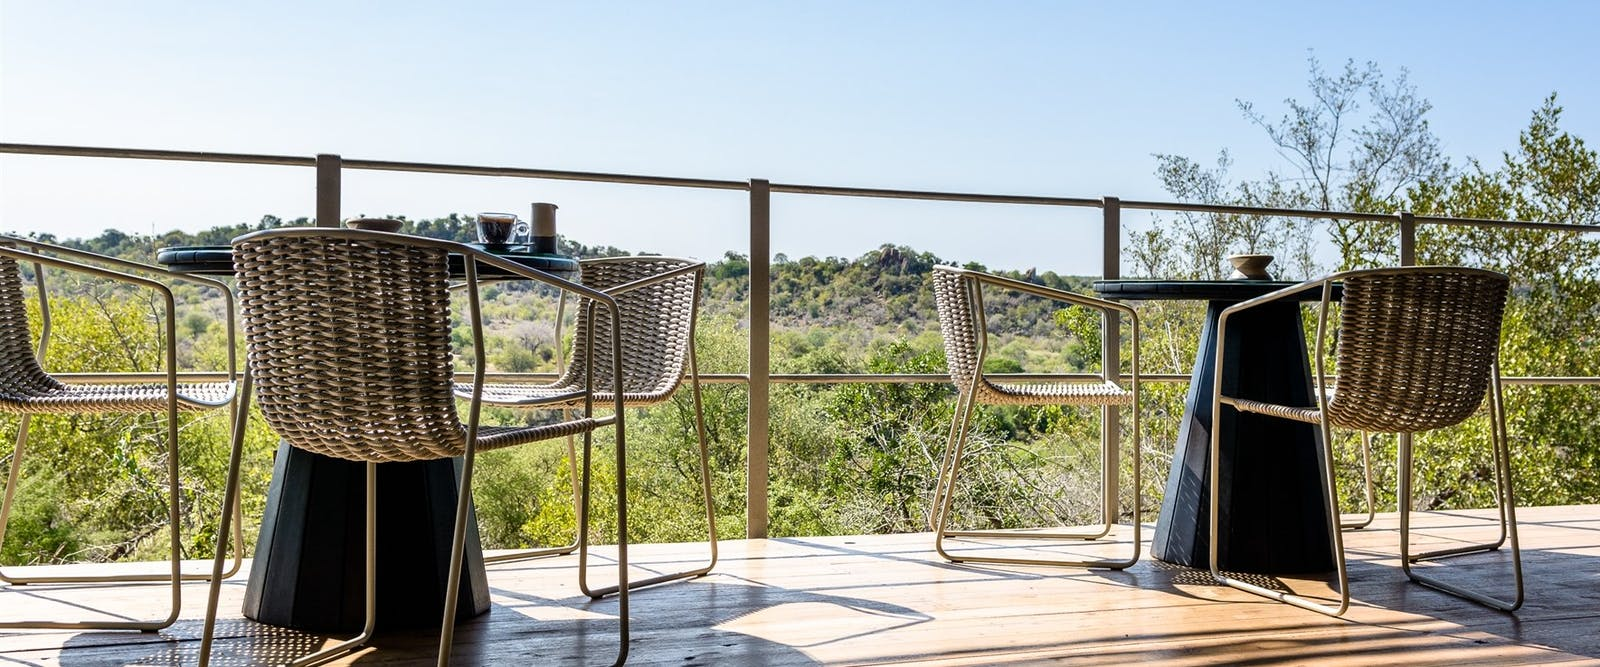 Outdoor Sitting Area at Singita